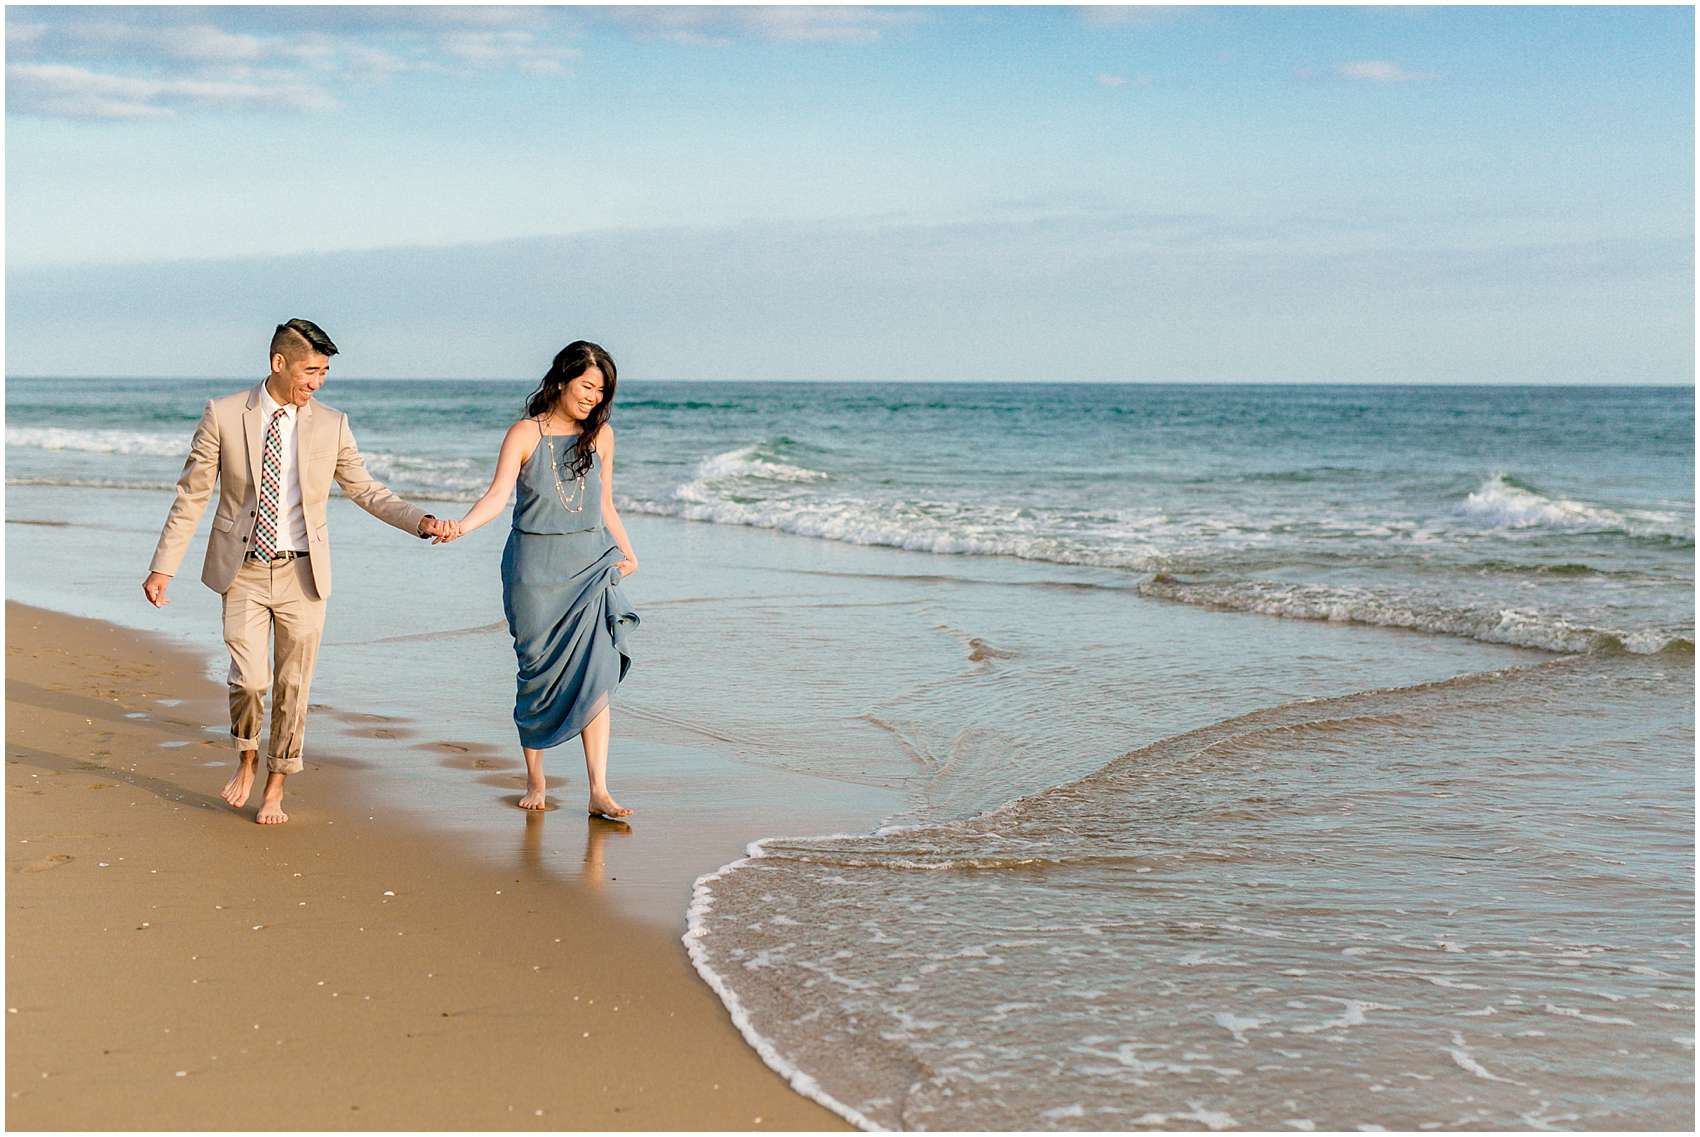 Newport Beach Engagement Photography Smetona Photo Bonnie Tim-0011.jpg